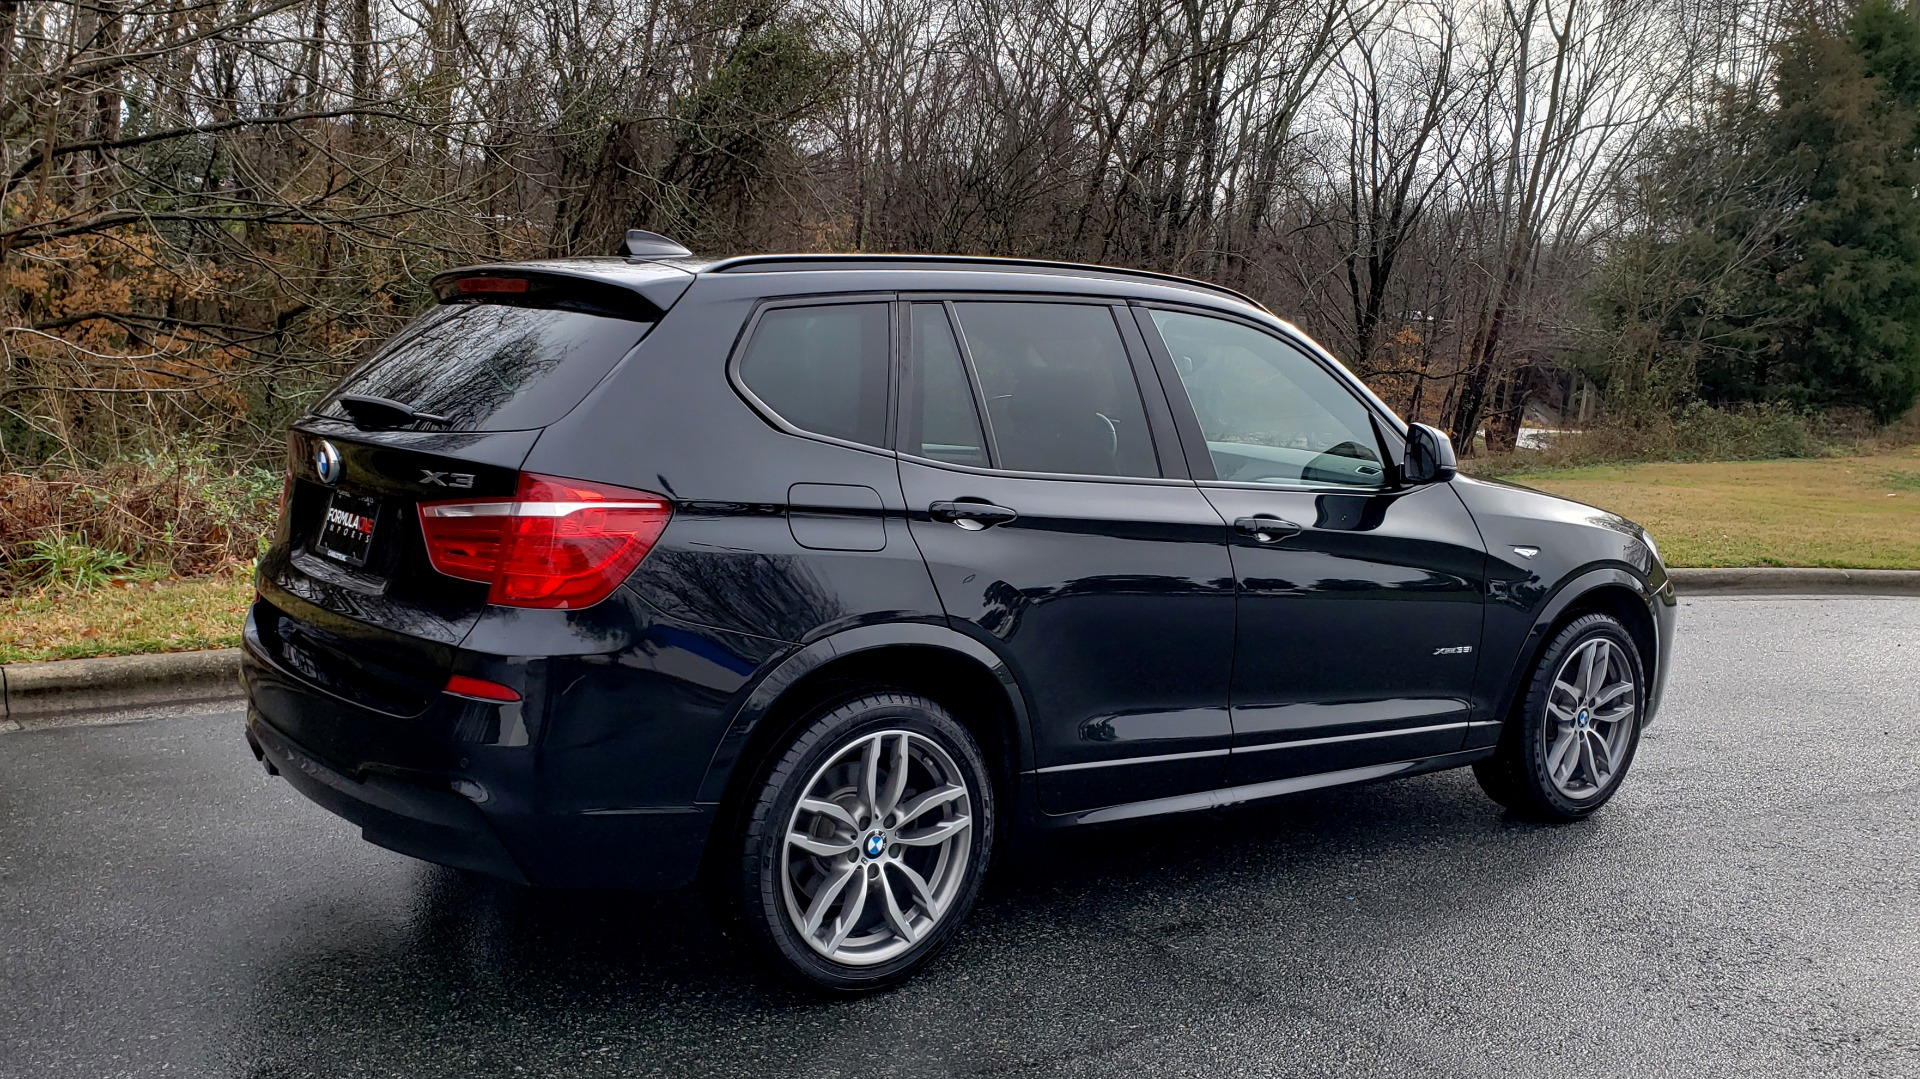 Used 2017 BMW X3 XDRIVE35I M-SPORT / DRVR ASST PLUS / TECHNOLOGY / HUD / BLIND SPOT for sale Sold at Formula Imports in Charlotte NC 28227 6